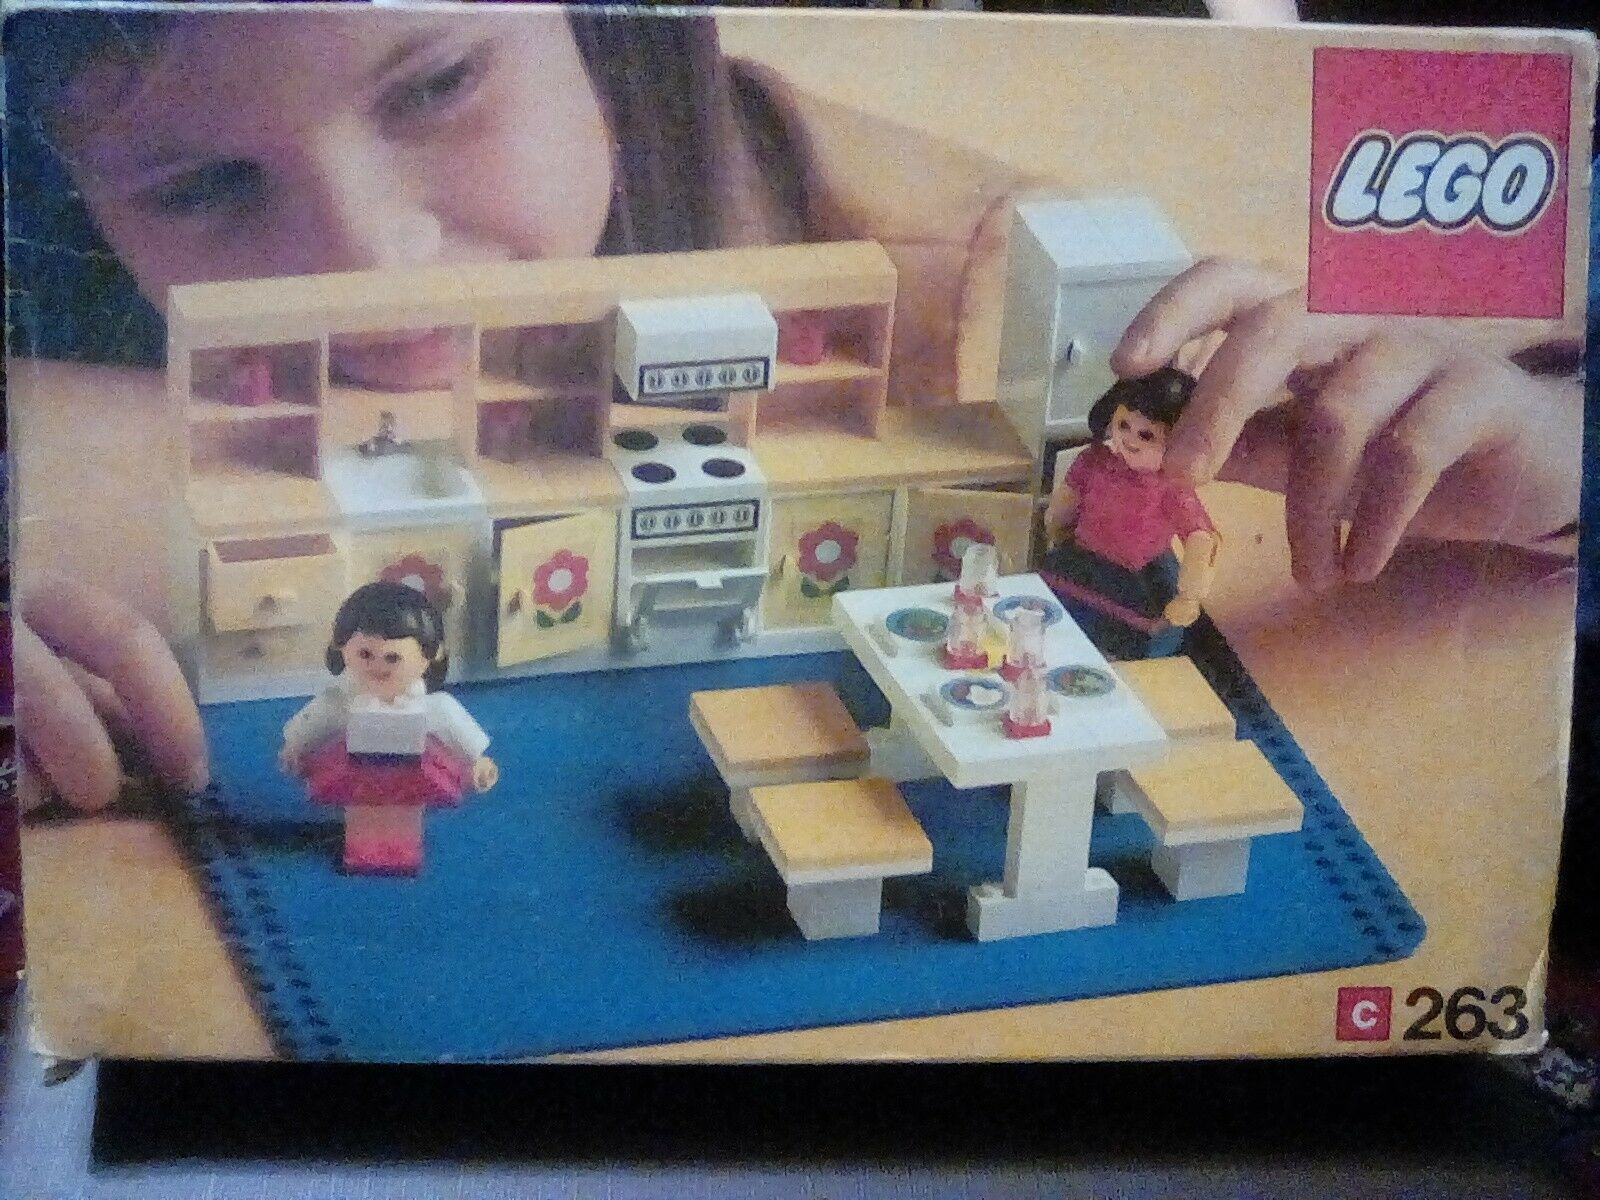 Vintage Lego Playset 263, Boxed 100% Complete